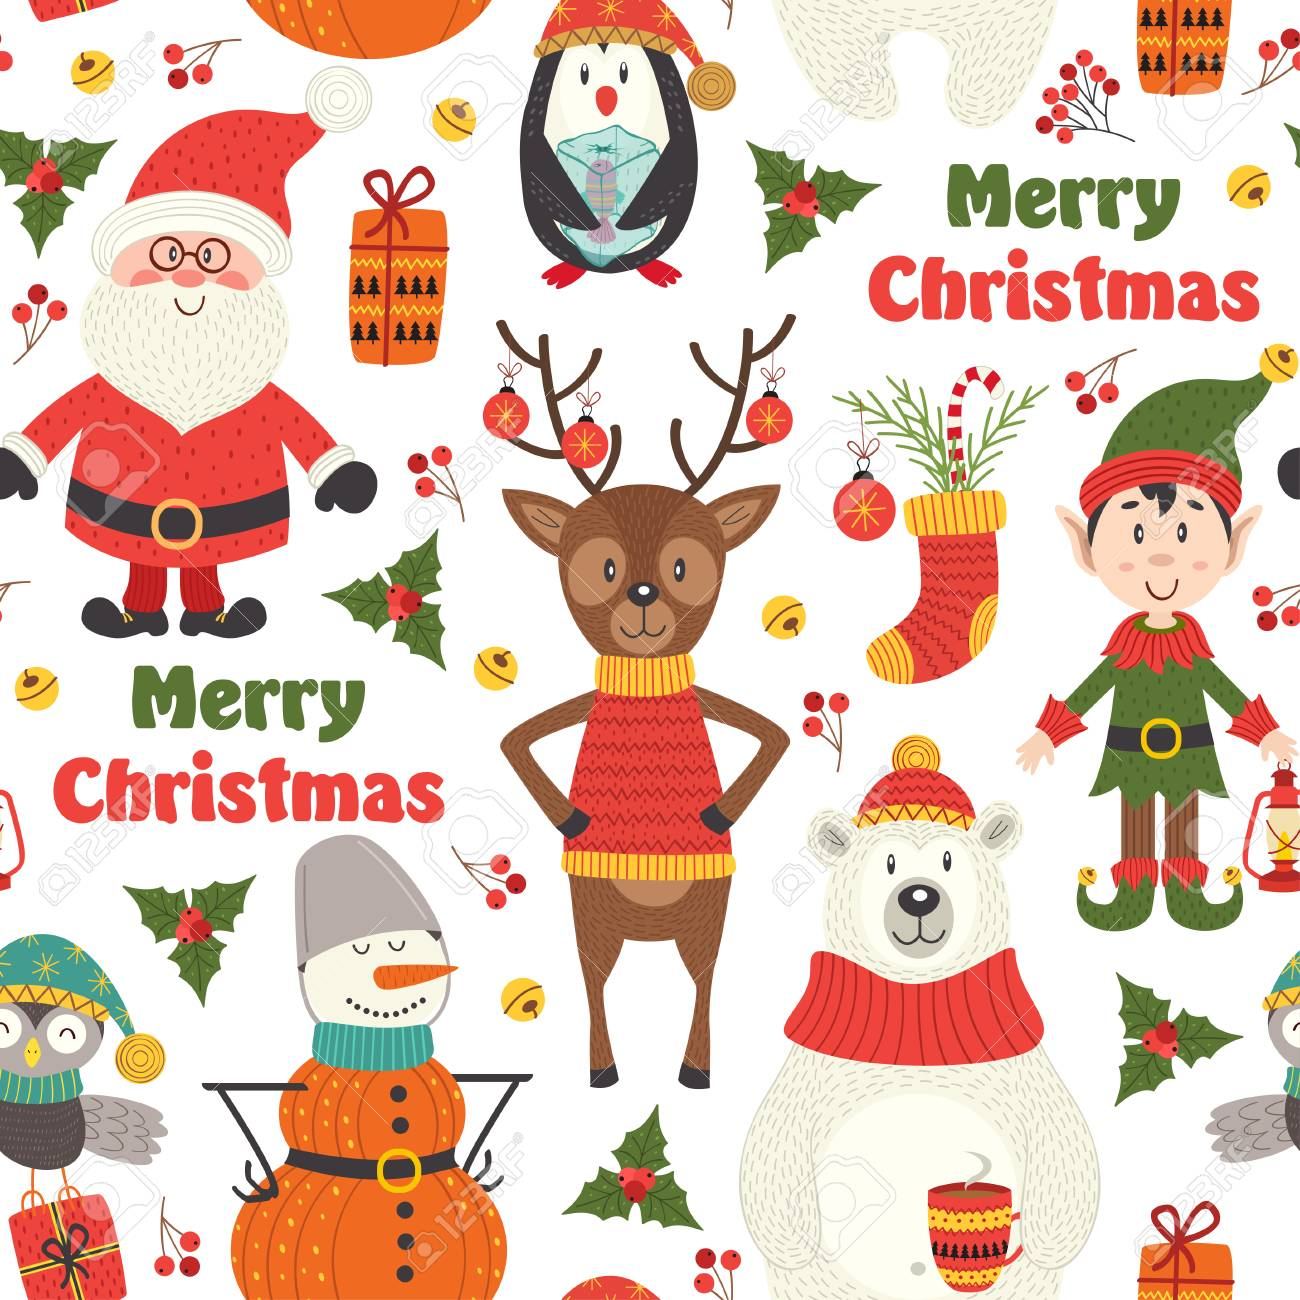 seamless pattern with Christmas characters on white background - vector illustration, eps - 89812416